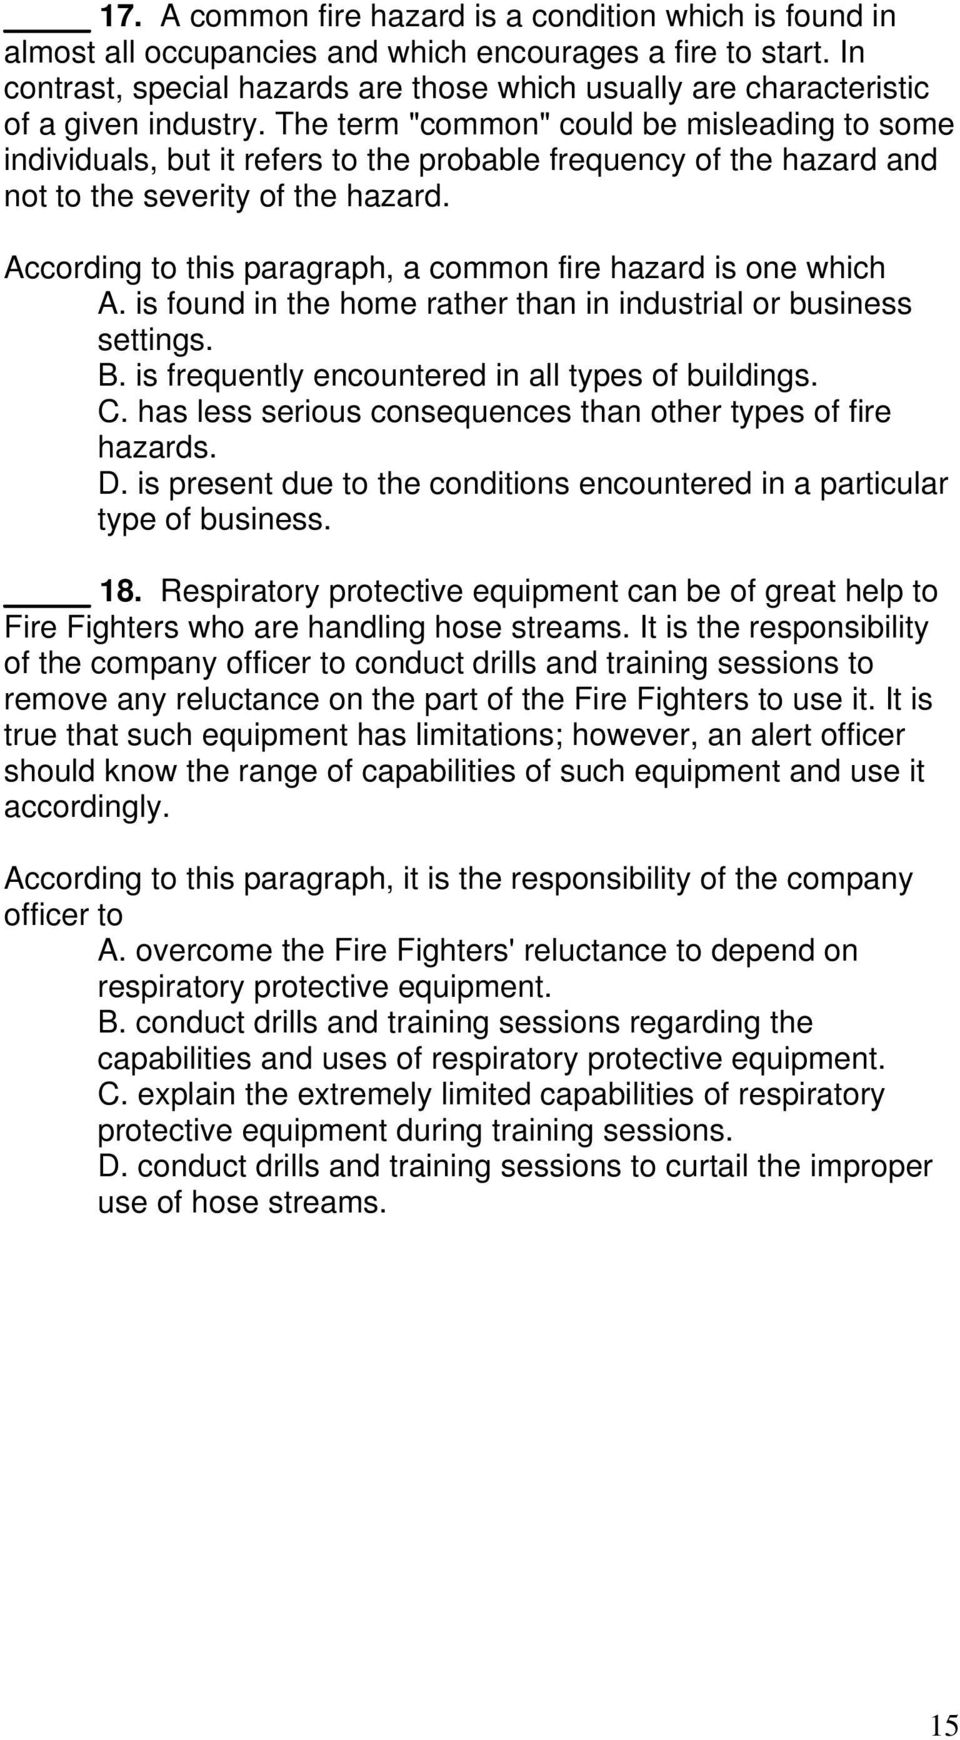 fire fighter trainee examination study guide pdf the term common could be misleading to some individuals but it refers to